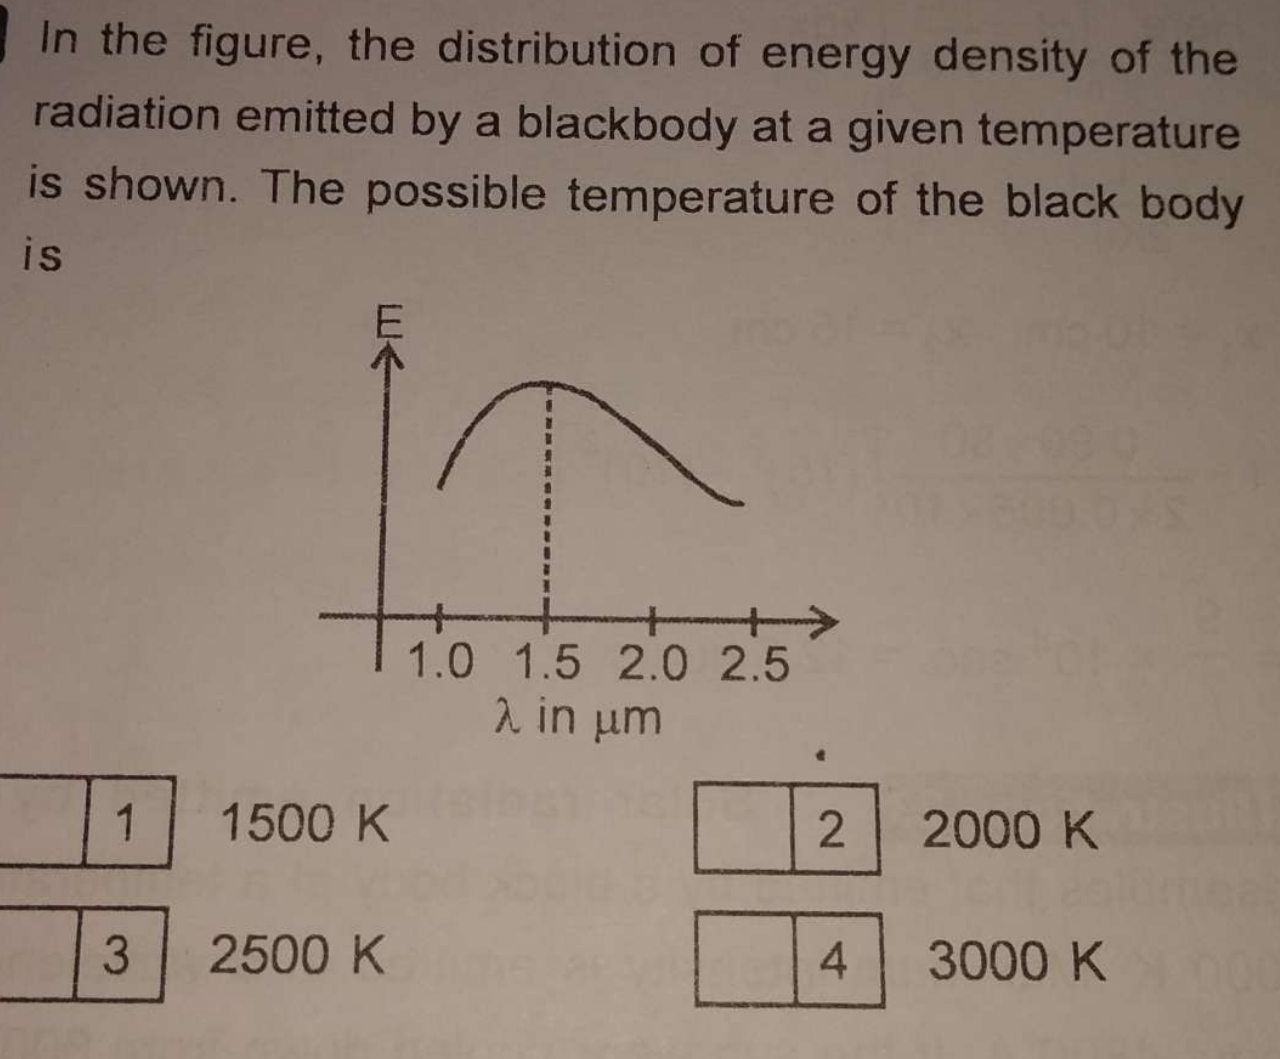 In the figure, the distribution of energy density of the radiation emitted by a blackbody at a given temperature is shown. The possible temperature of the black body